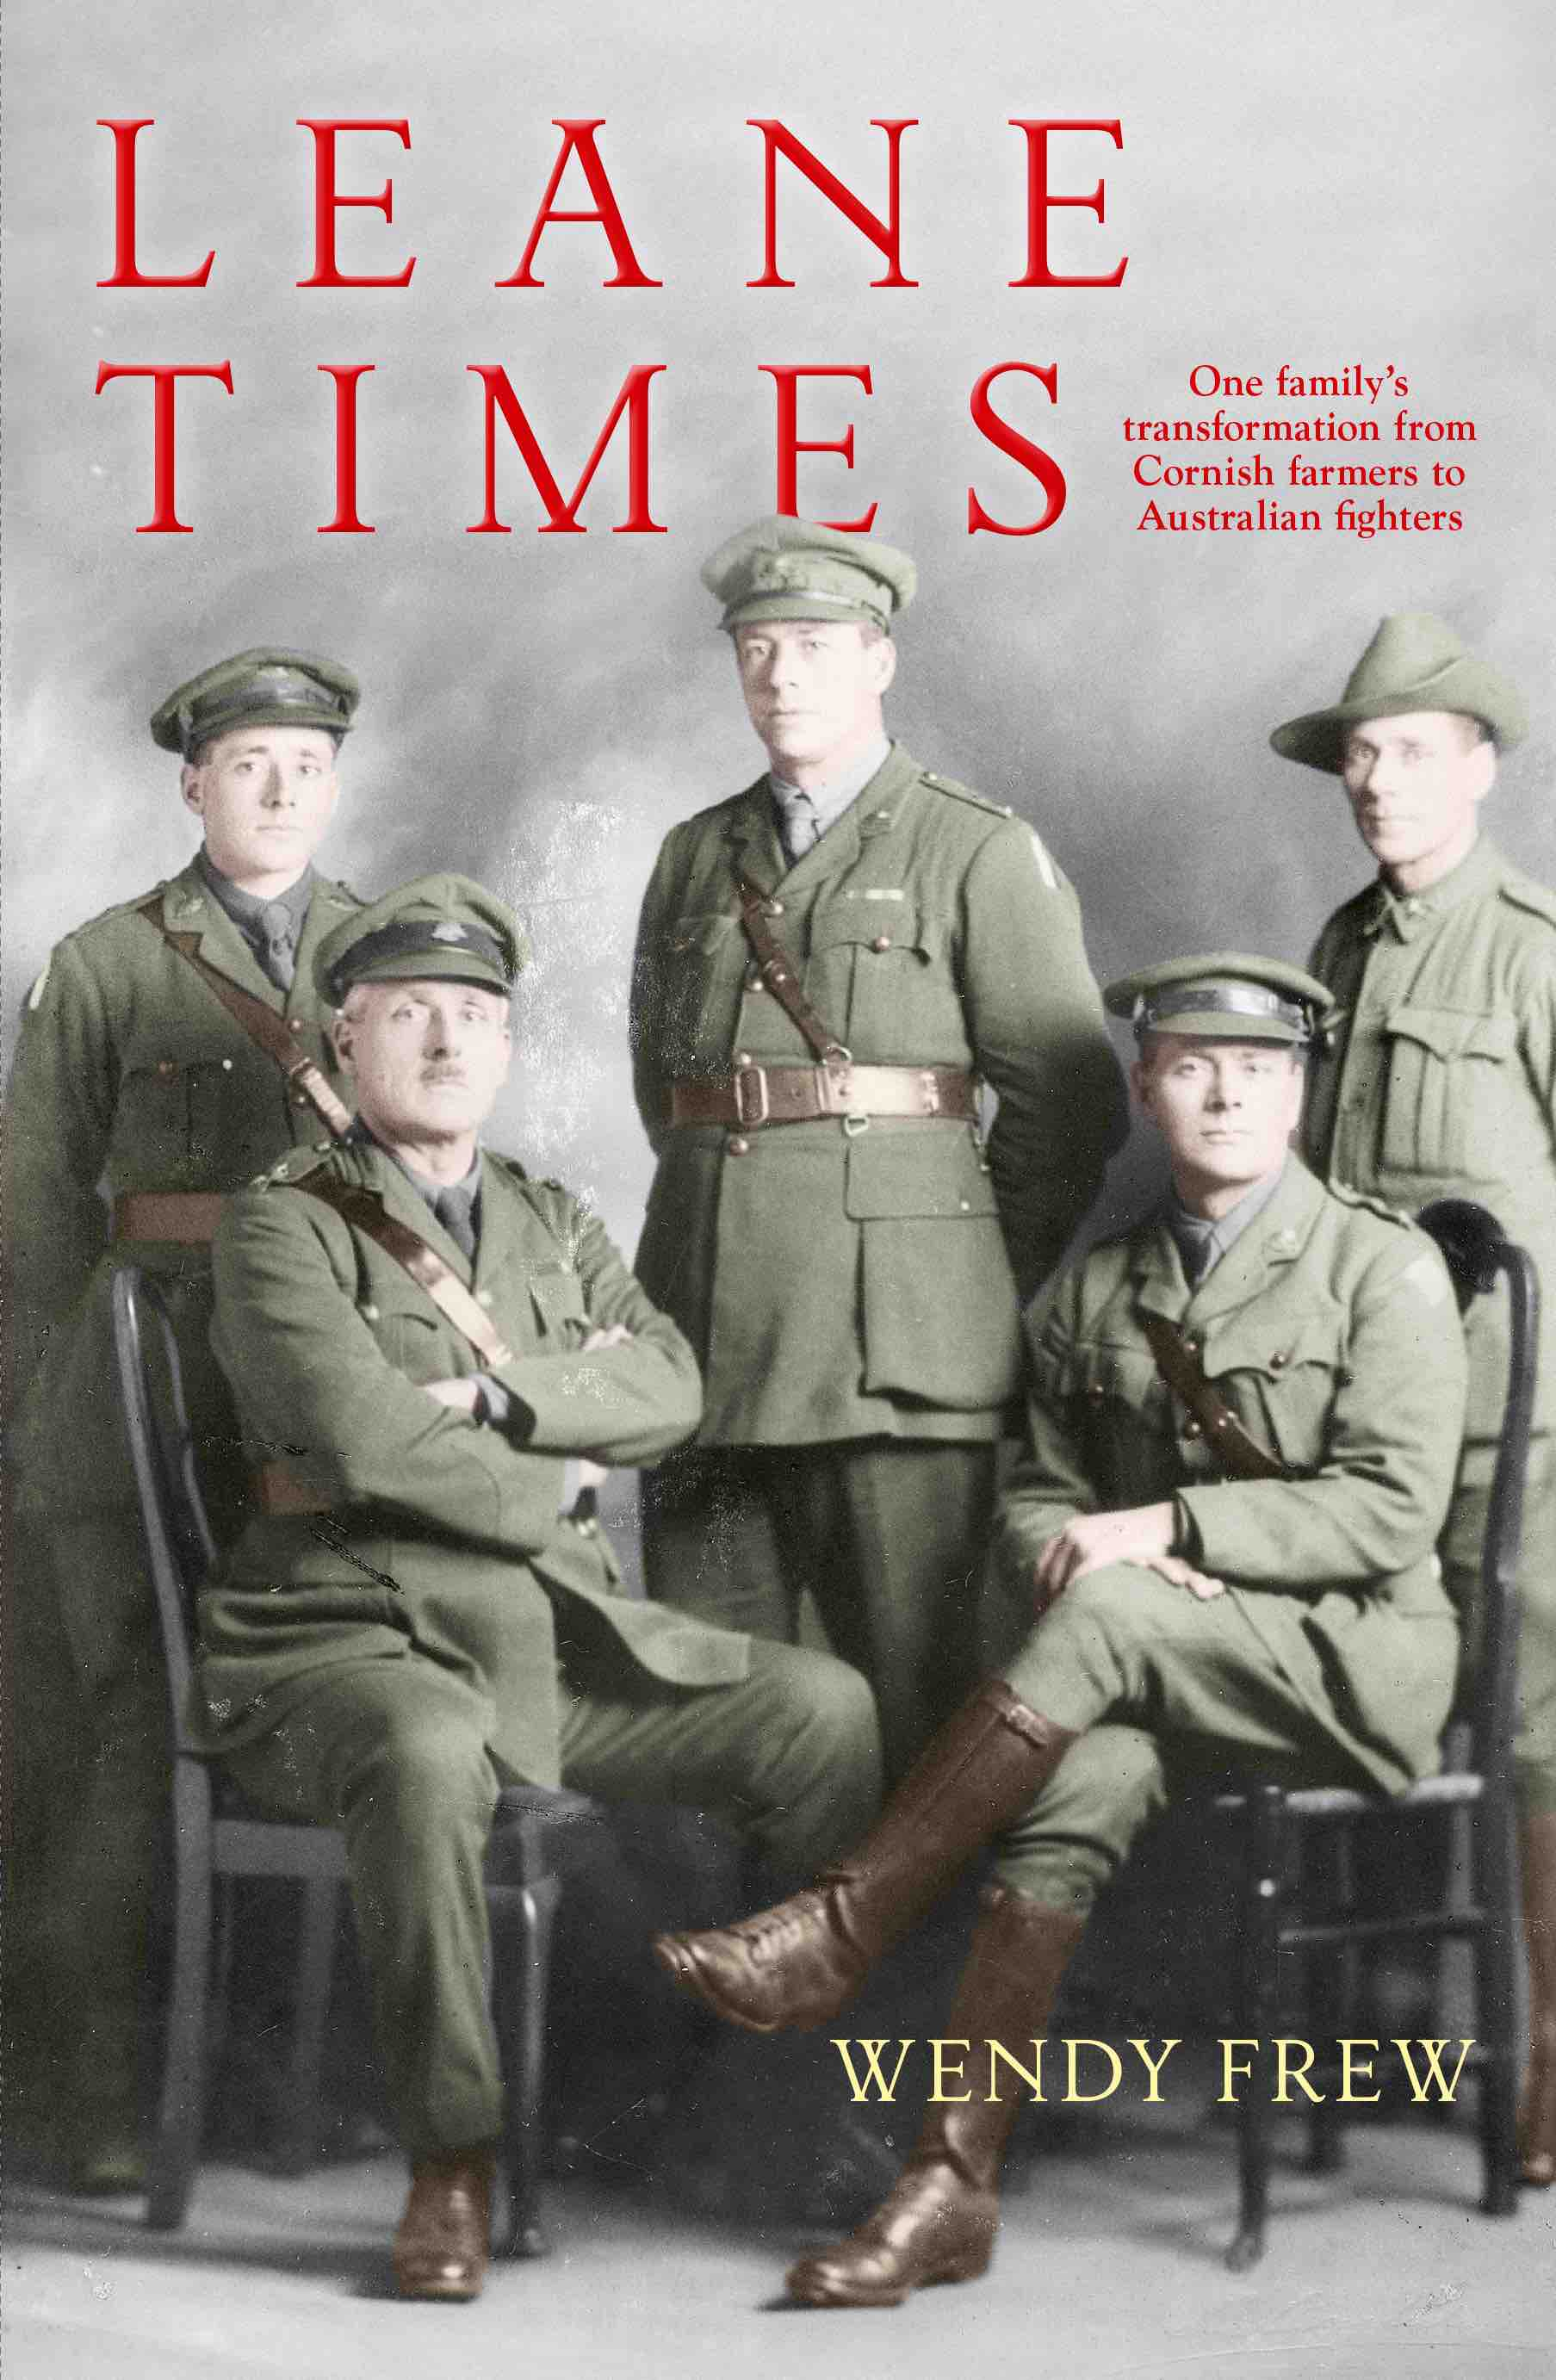 - Leane Times by Wendy FrewEdited and produced by Broadcast BooksDesigned by Seymour DesignPublished August 2018On sale at Gleebooks, Abbeys, Sydney and Wakefield Press, Adelaide and The Australian War Memorial, Canberra